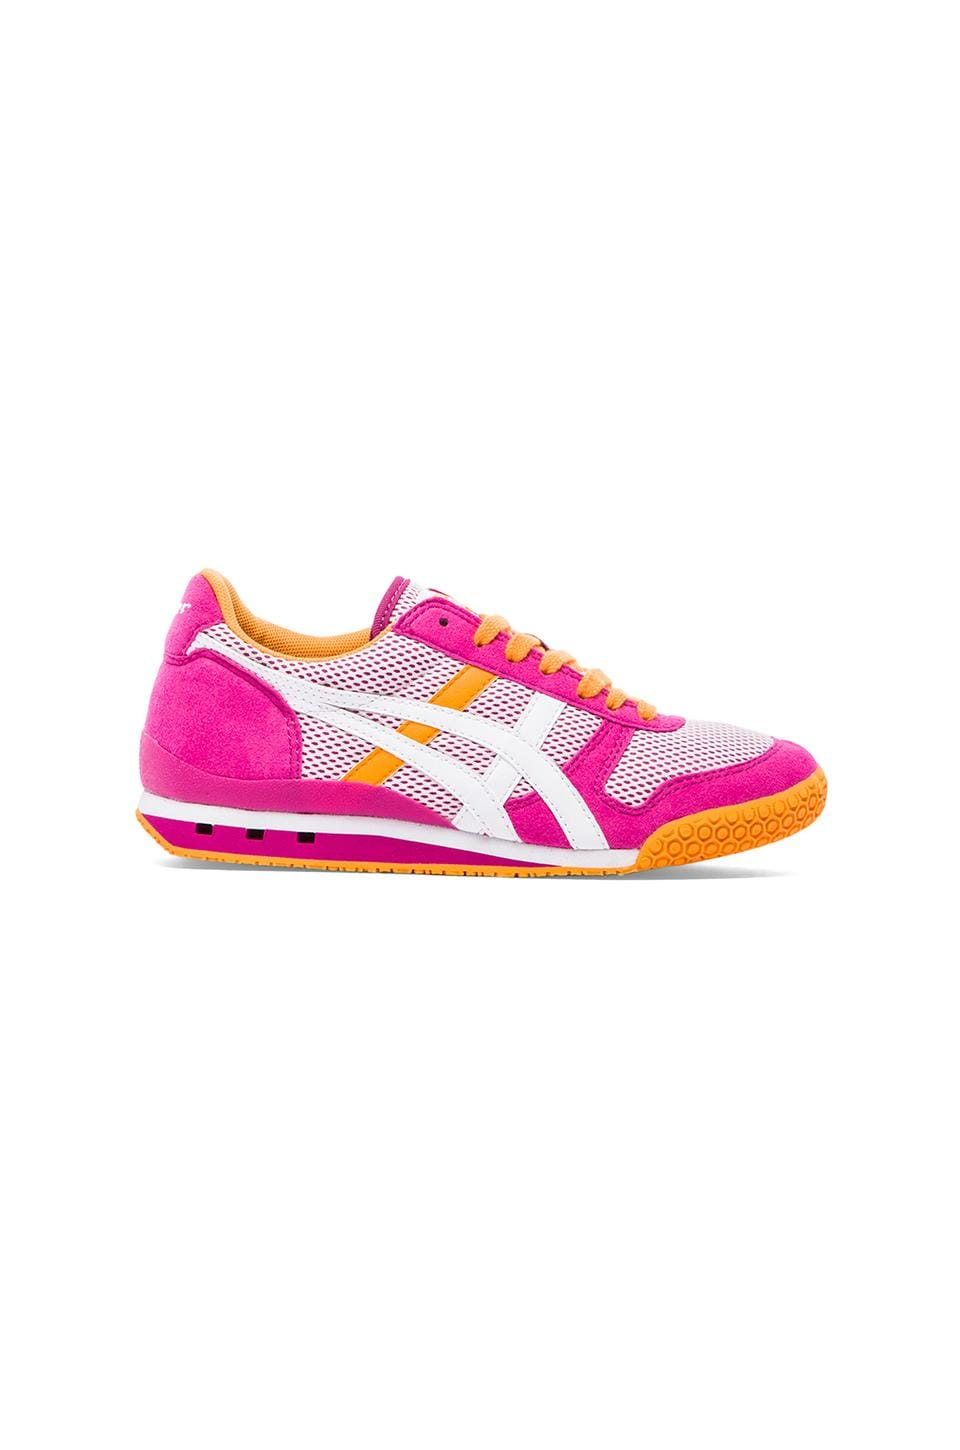 Onitsuka Tiger Ultimate 81 Sneaker in Magenta & White